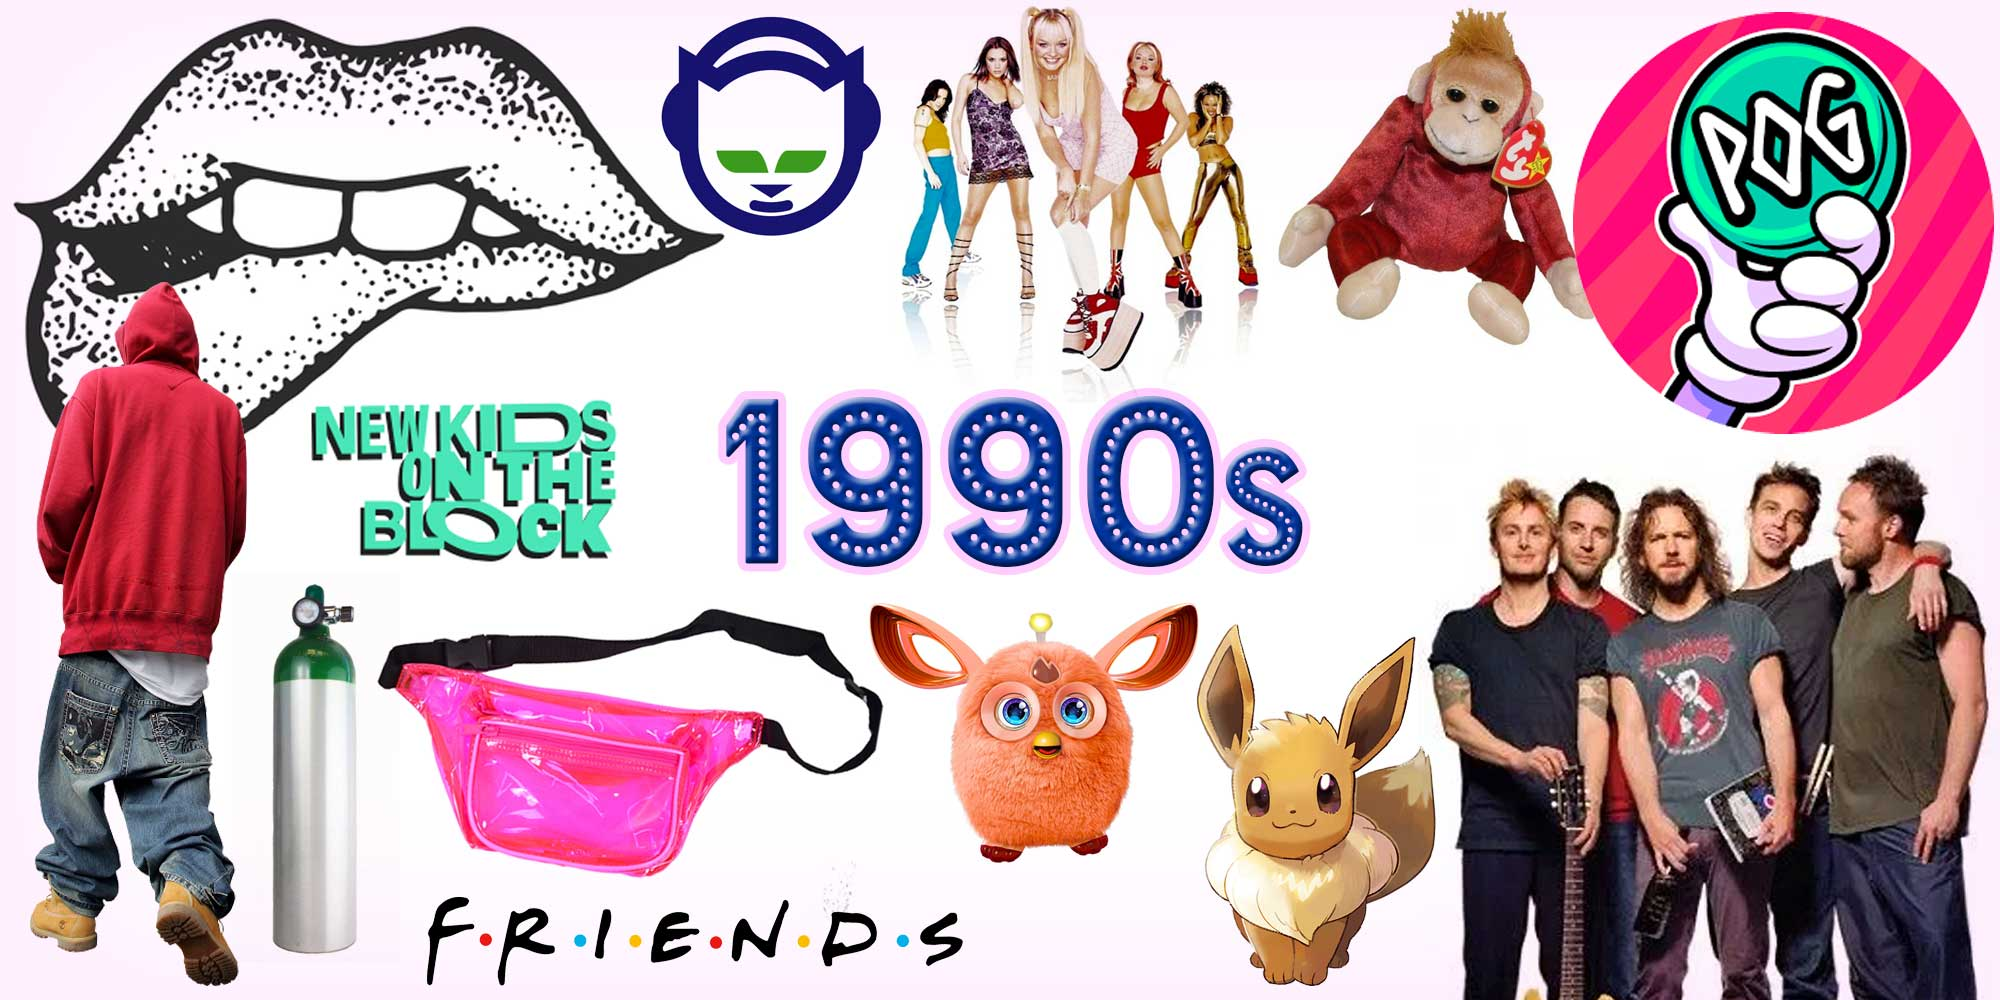 a00cd9b6a25 The 1990s was both a strange and exciting decade. It gave birth to new  music genres like grunge